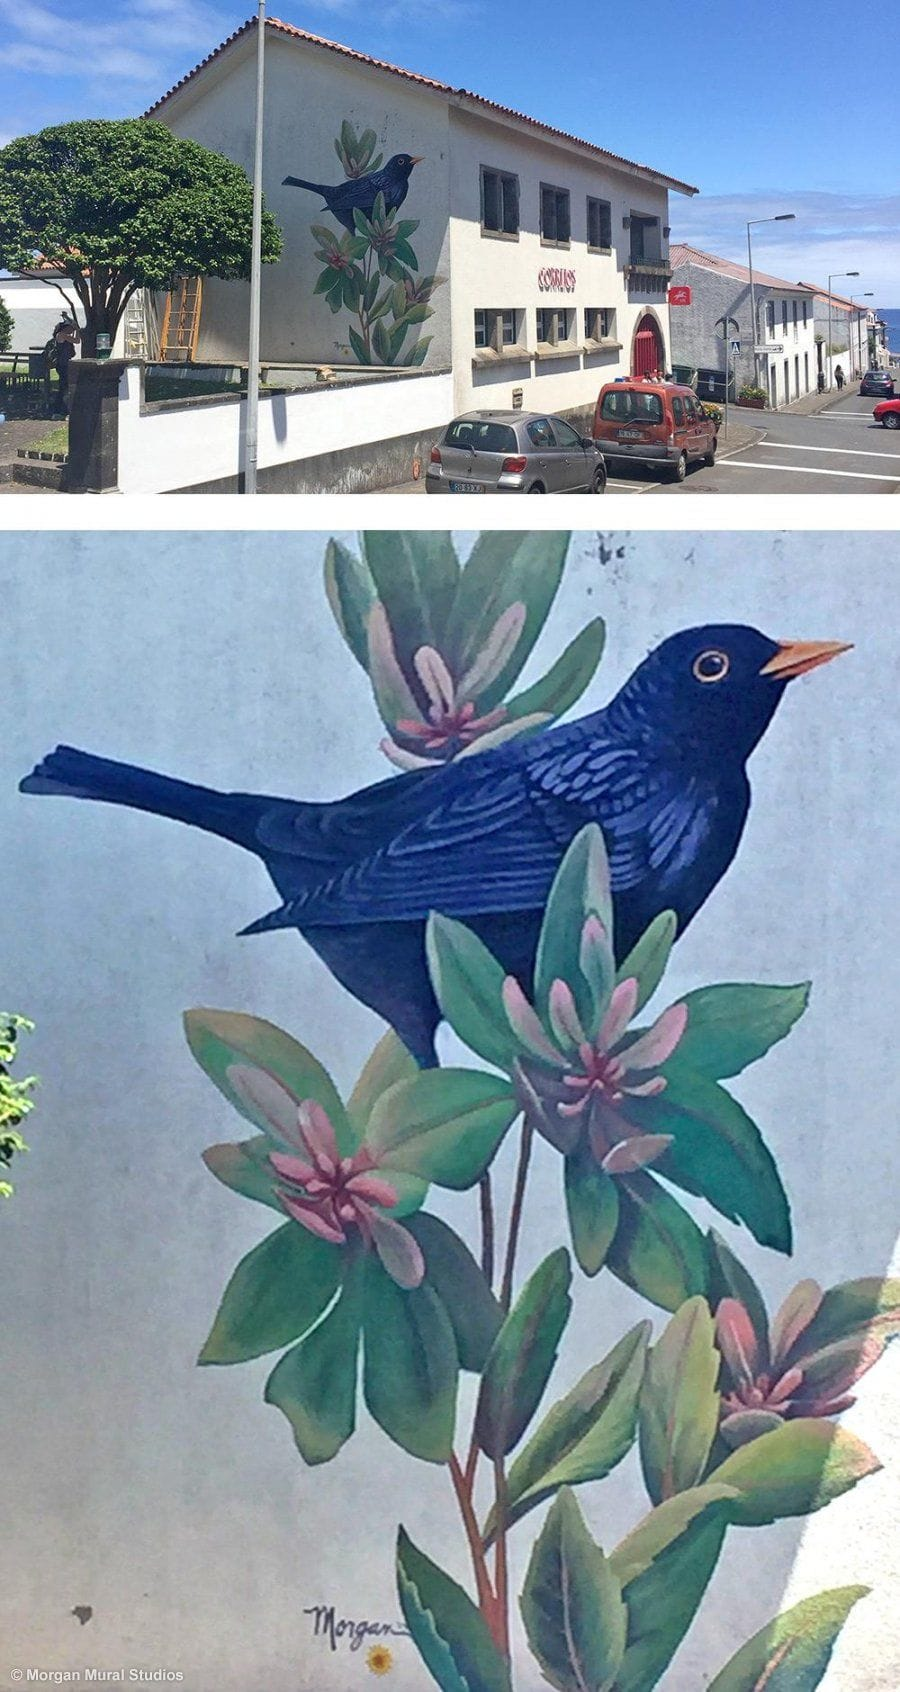 Melro mural at the post office building